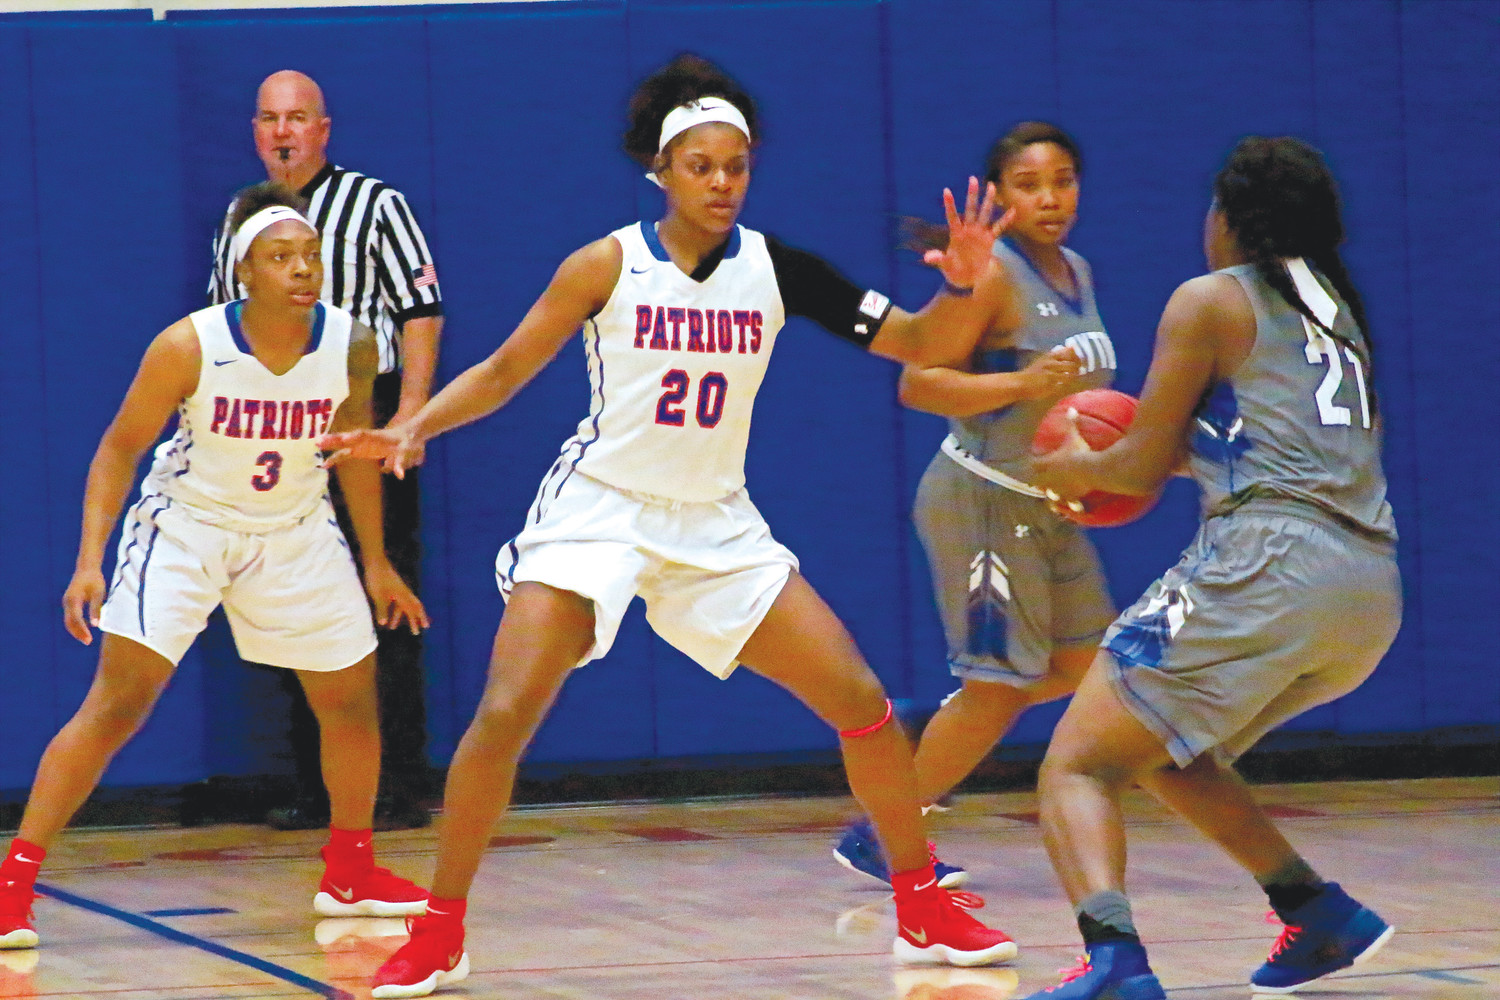 Orange Park High grad Shakarri Mack is strong presence in middle of College of Central Florida Lady Patriots basketball team with an 8.6 points per game average with 4.4 rebounds.